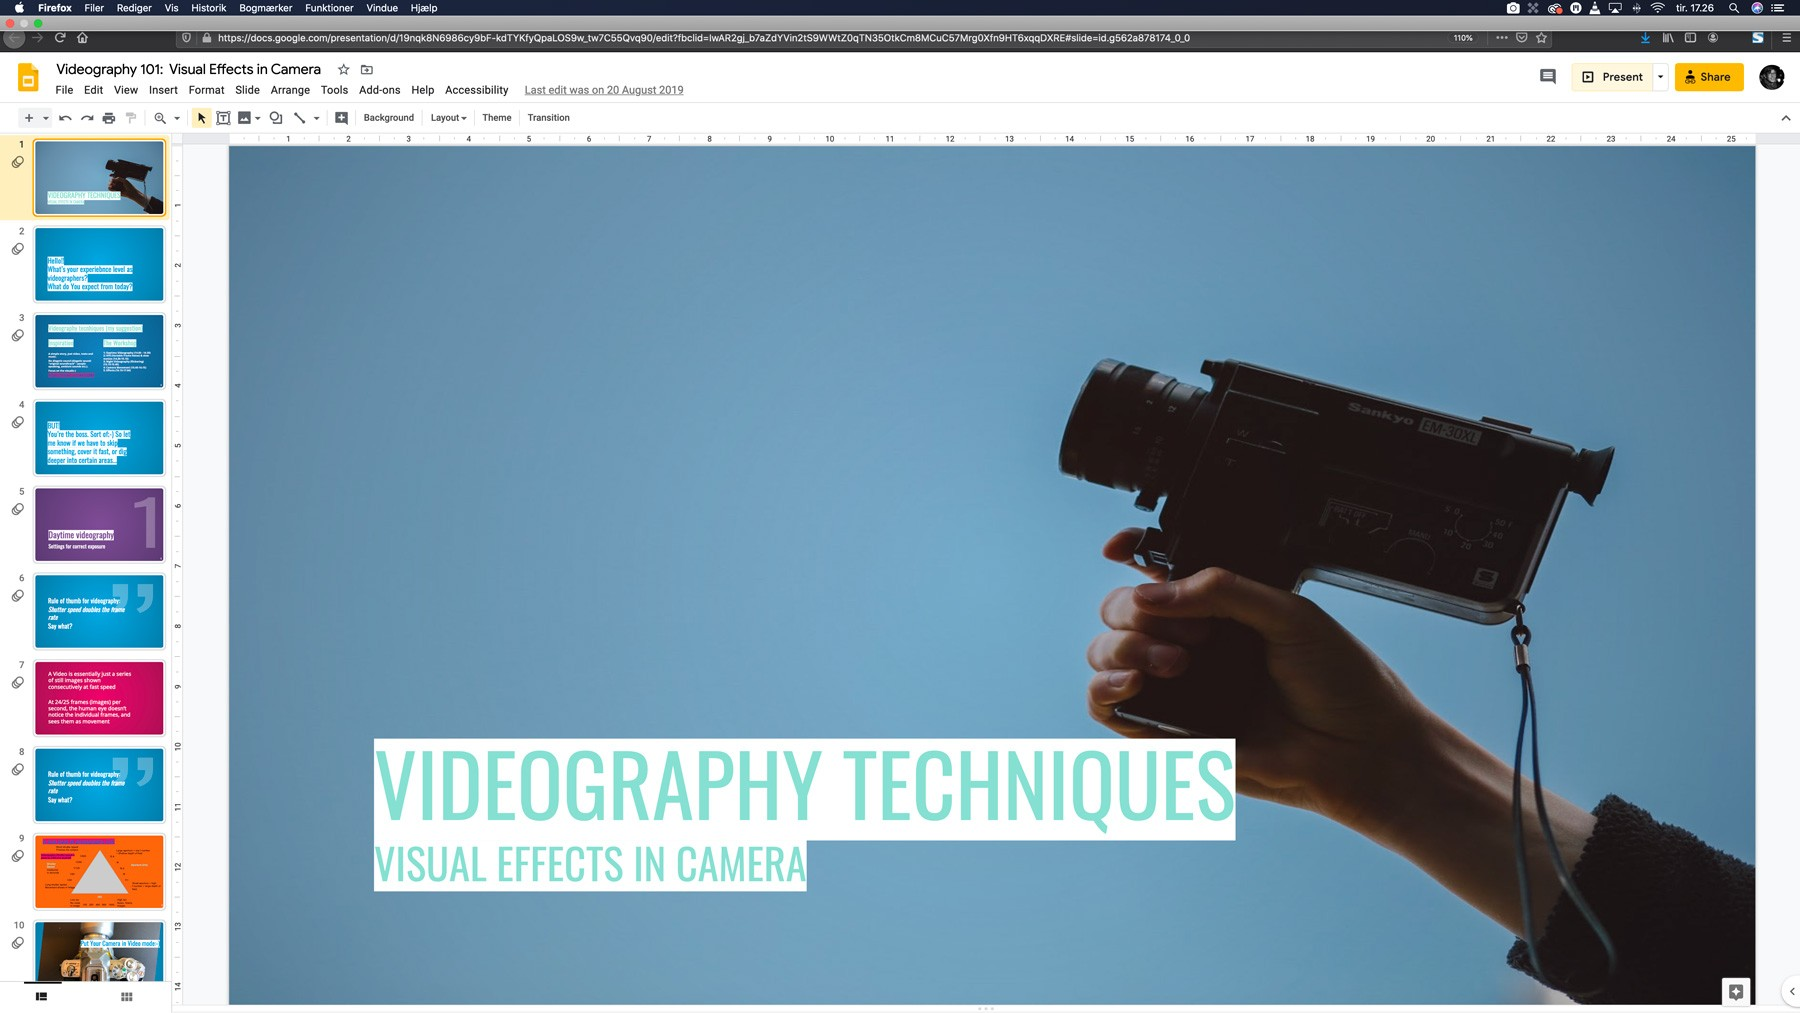 Videography techniques workshop